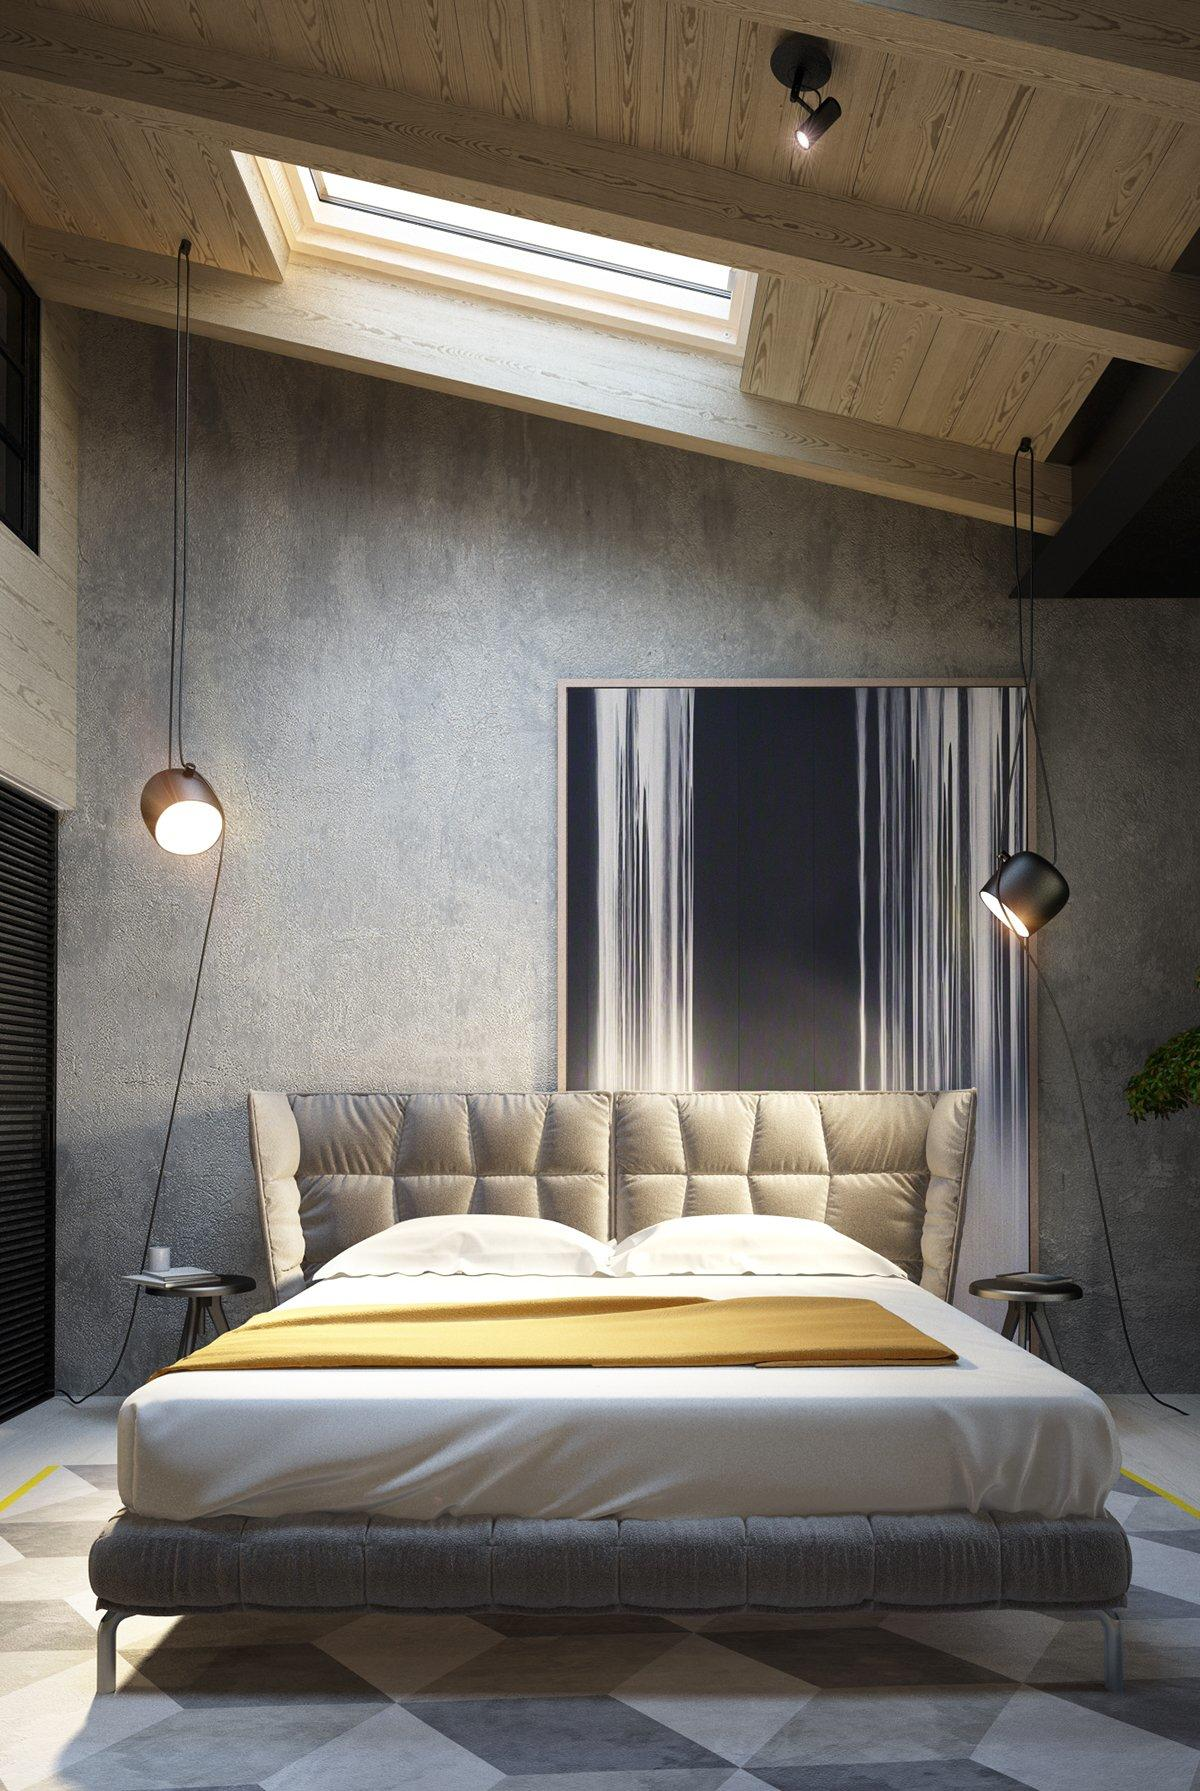 Paint Ideas For Bedrooms Walls exposed concrete walls ideas & inspiration